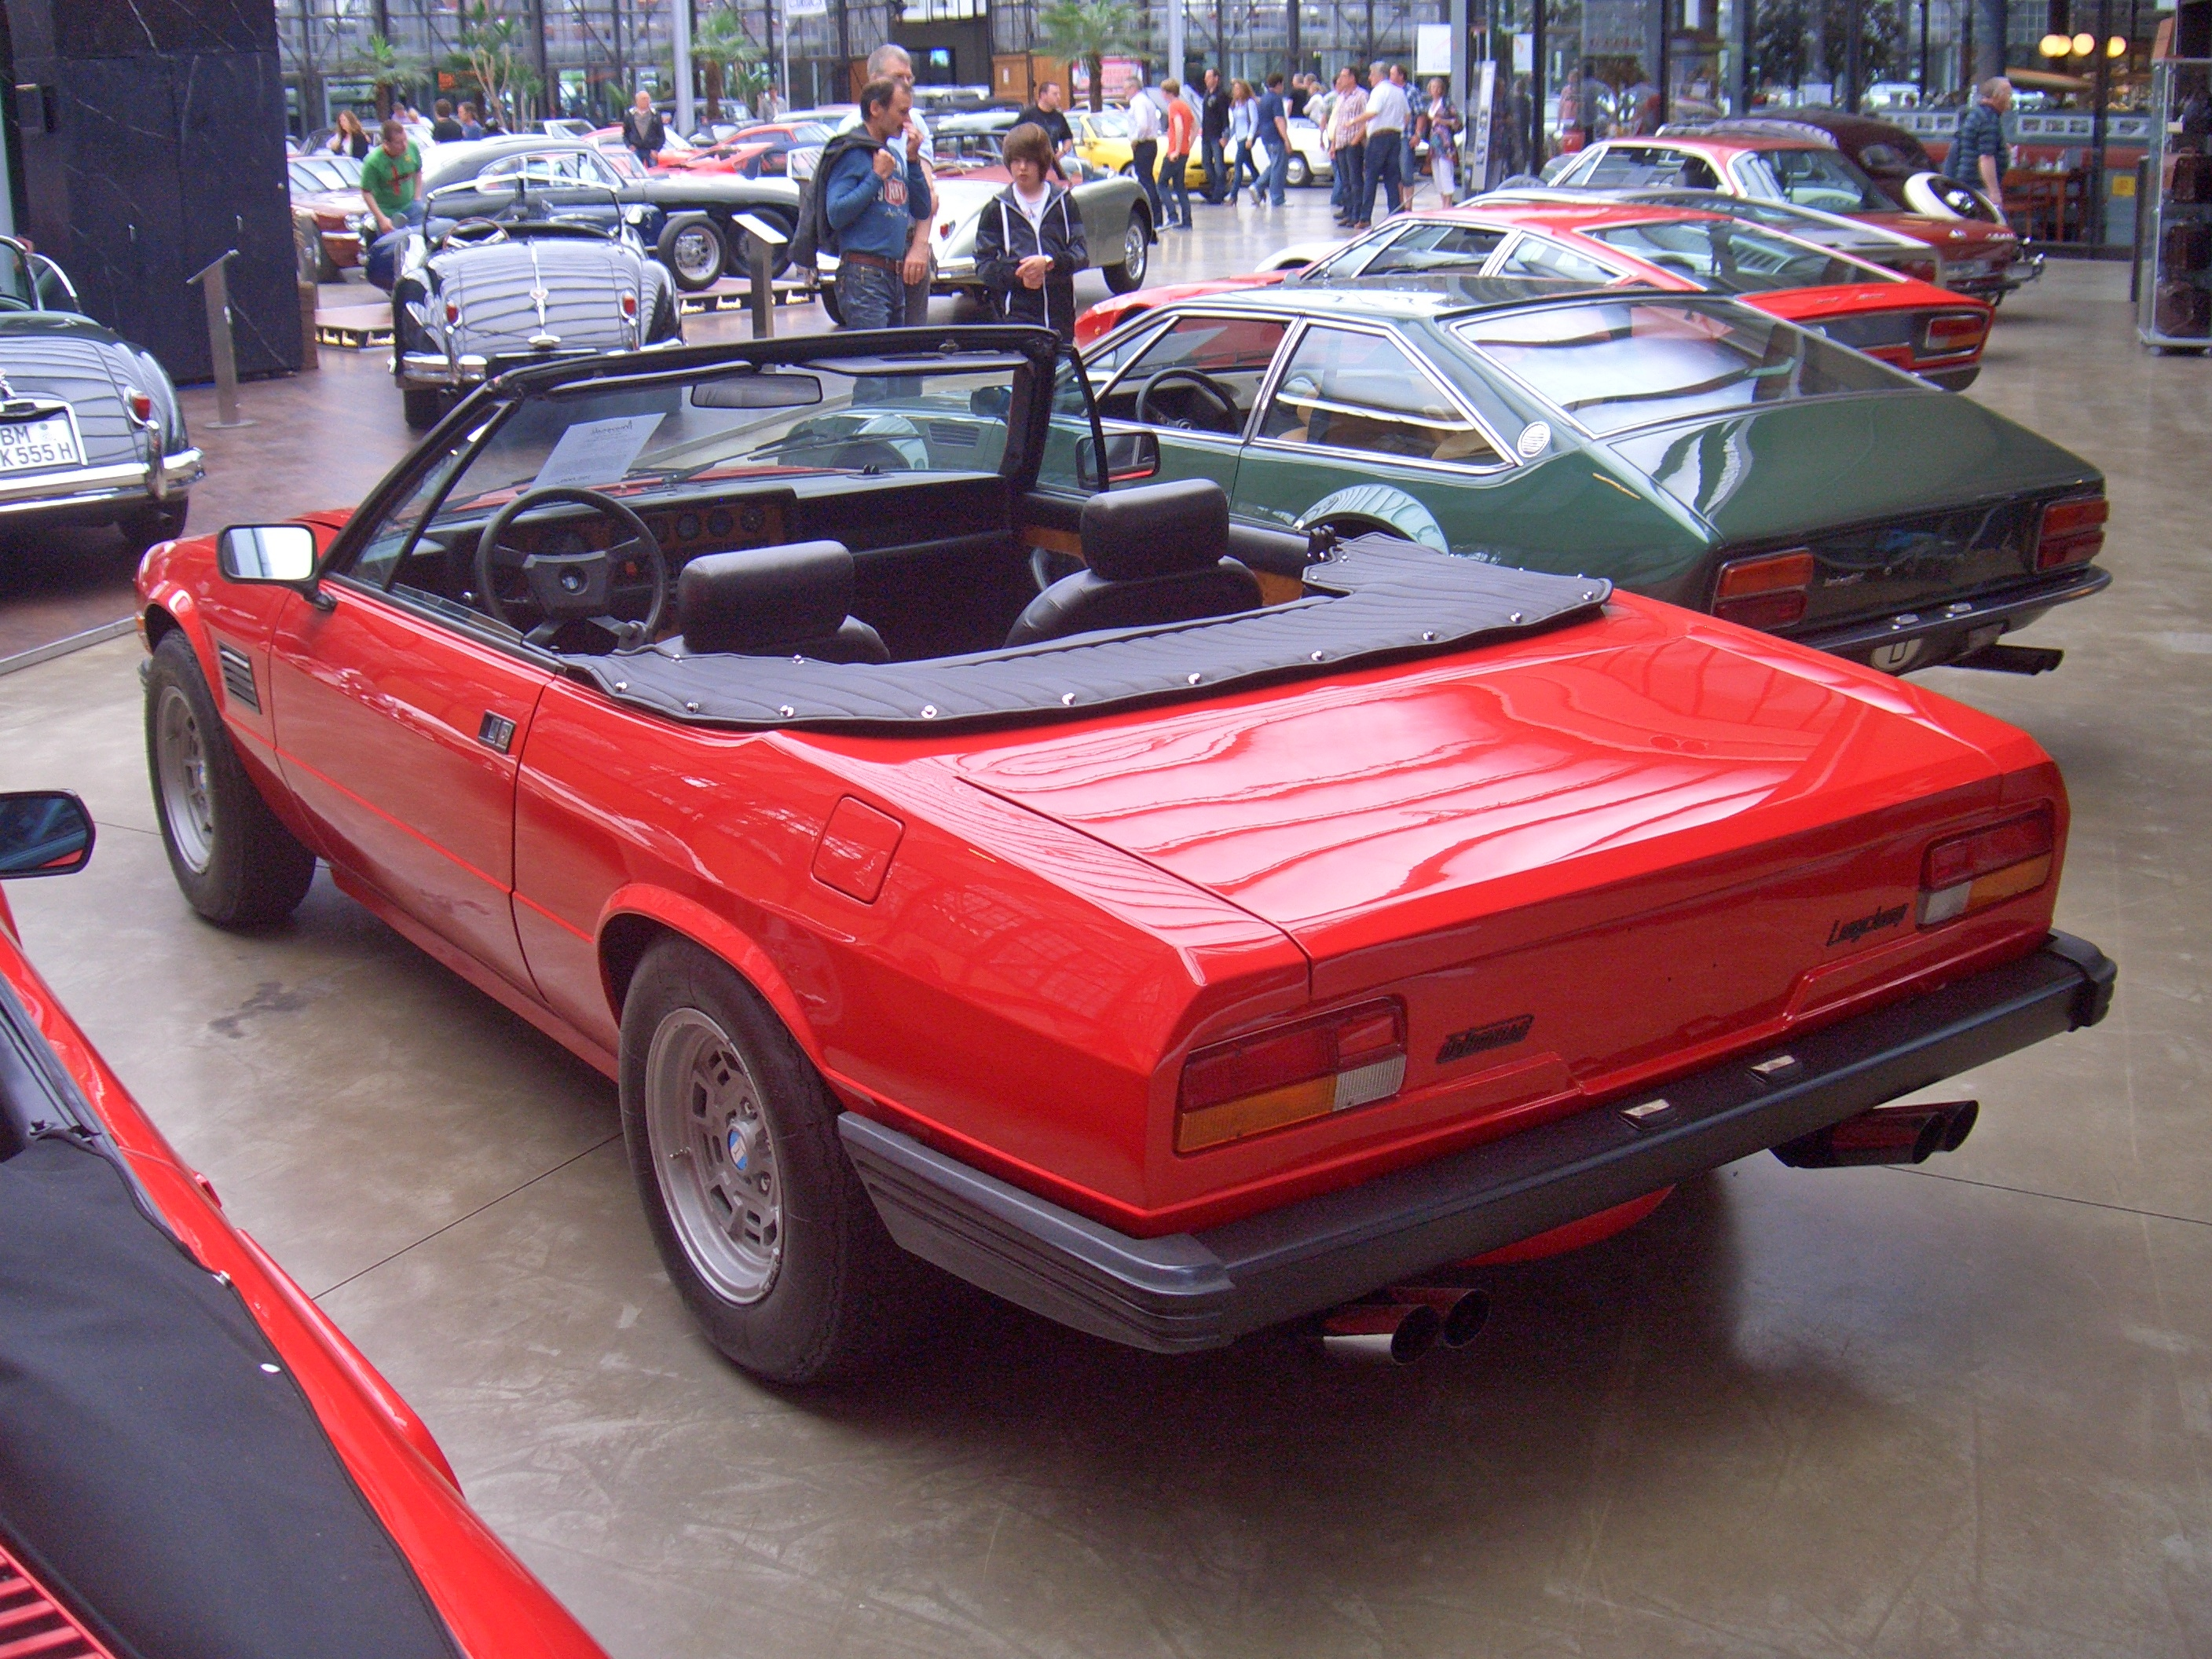 http://upload.wikimedia.org/wikipedia/commons/6/64/De_Tomaso_Longchamp_Spyder_Gen2_000_1983_backleft_2011-06-13_A_ji.jpg